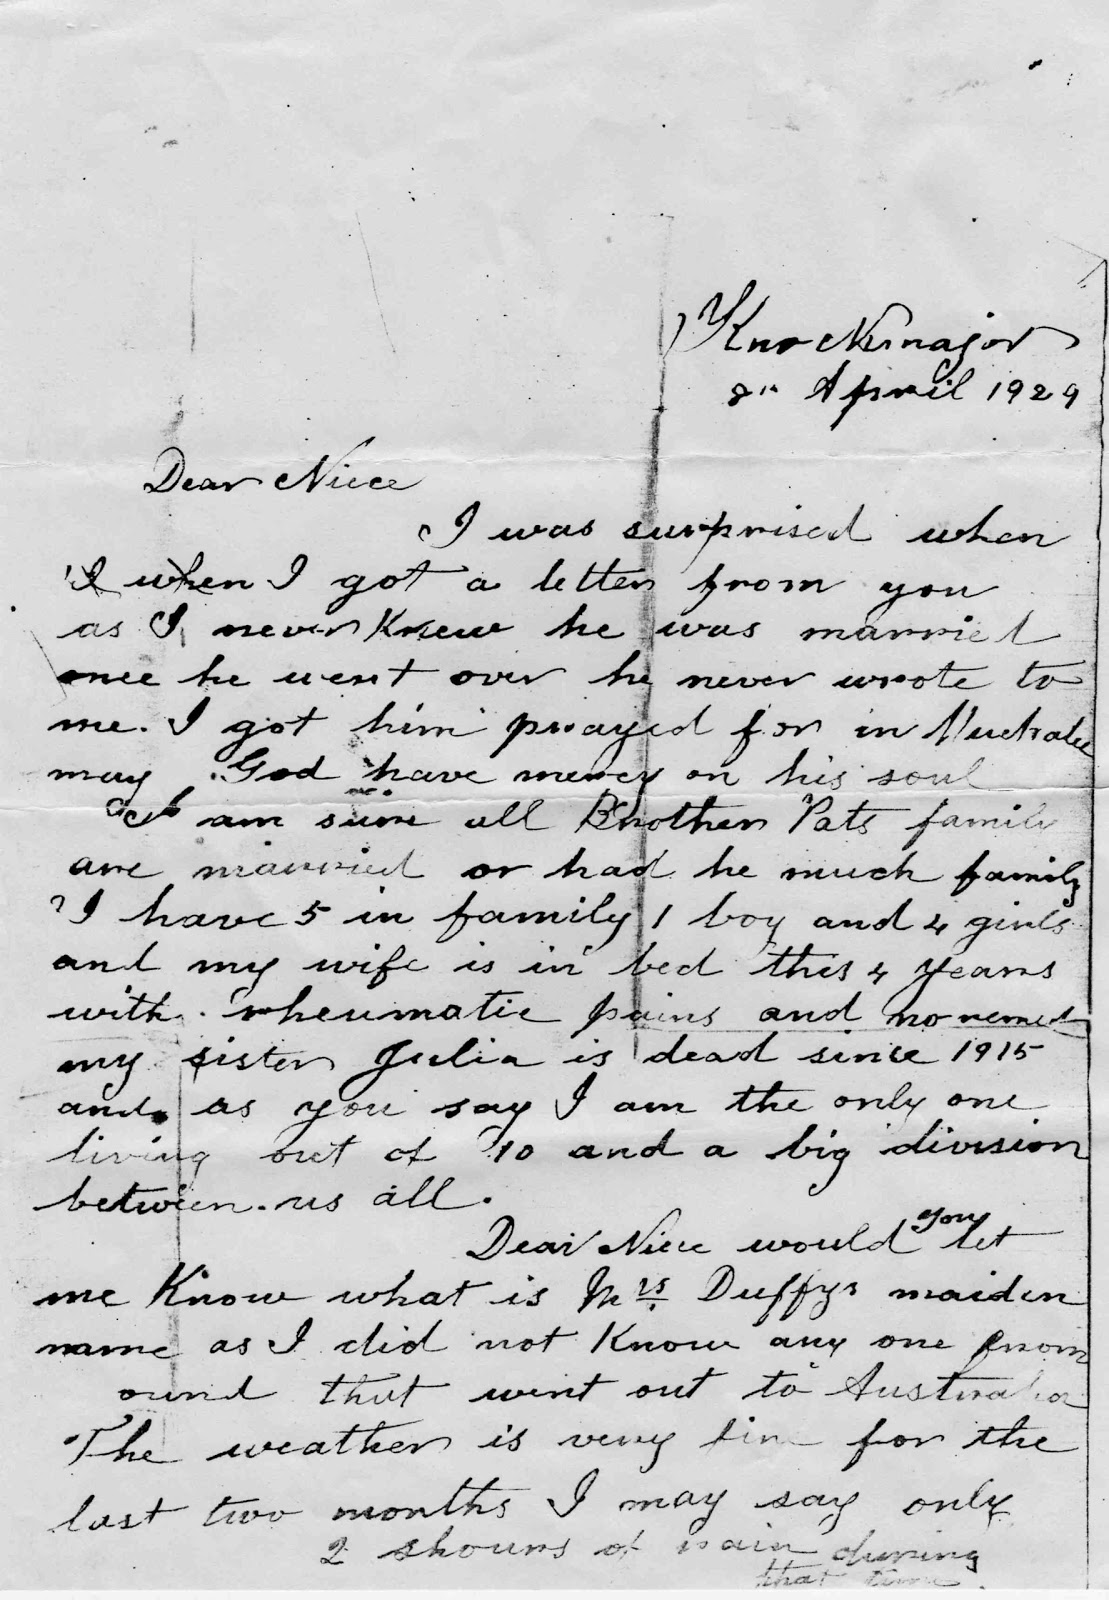 The tree of me brennan letter from knockmajor mary anns father william had died in december 1928 and she had obviously written to ireland to inform his family spiritdancerdesigns Images